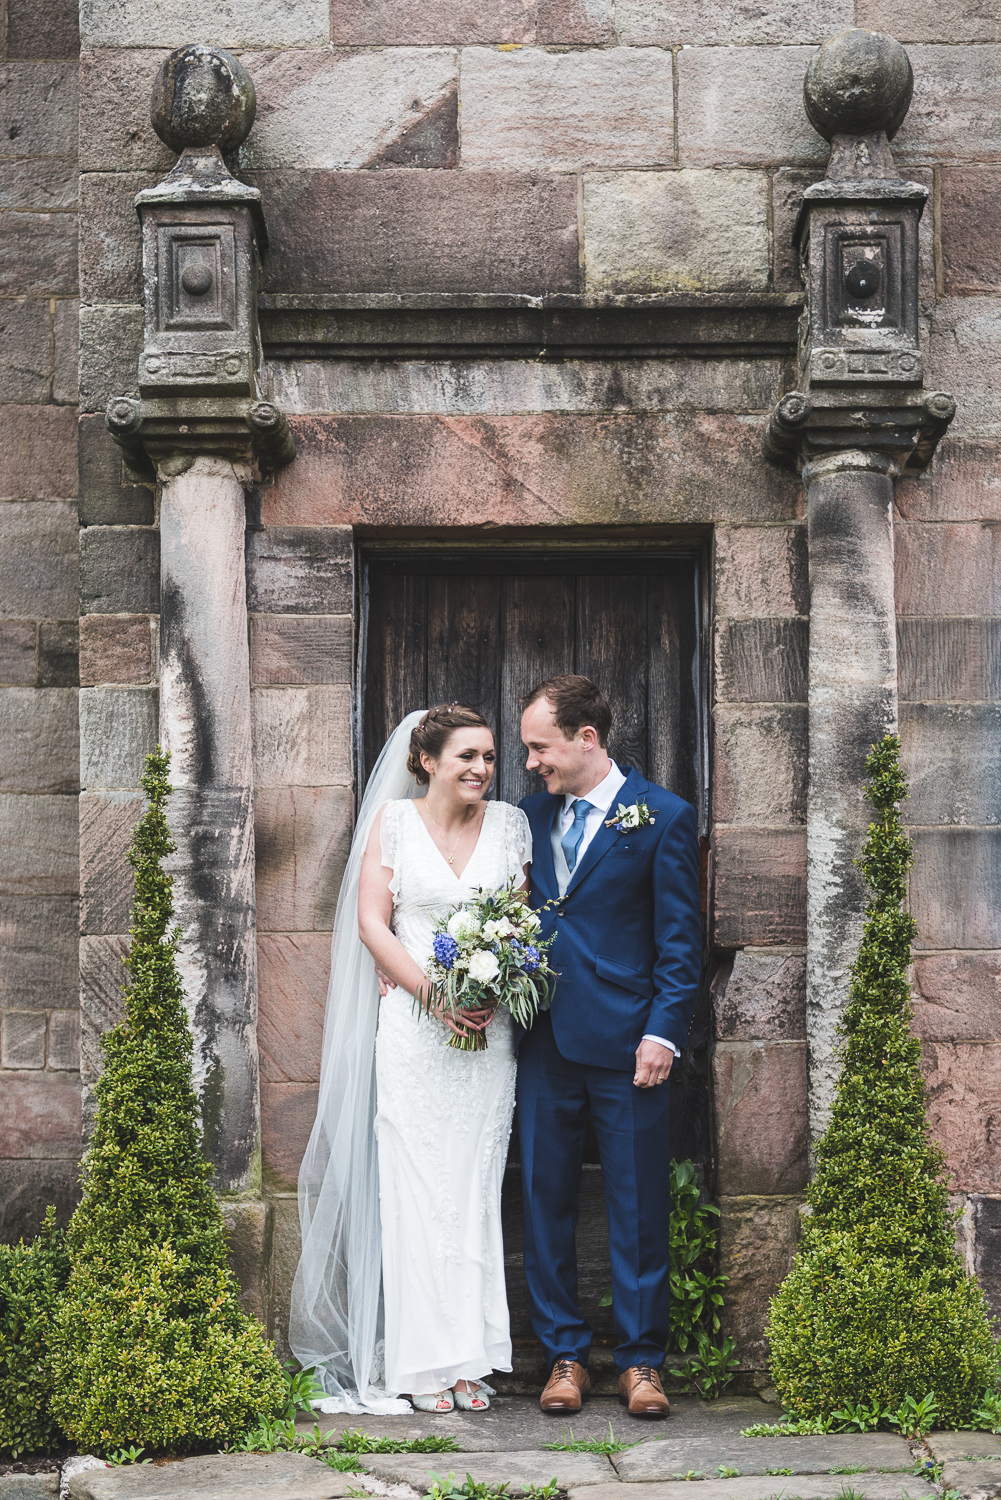 The Ashes, Staffordshire - Emma Hare Photography-26.jpg